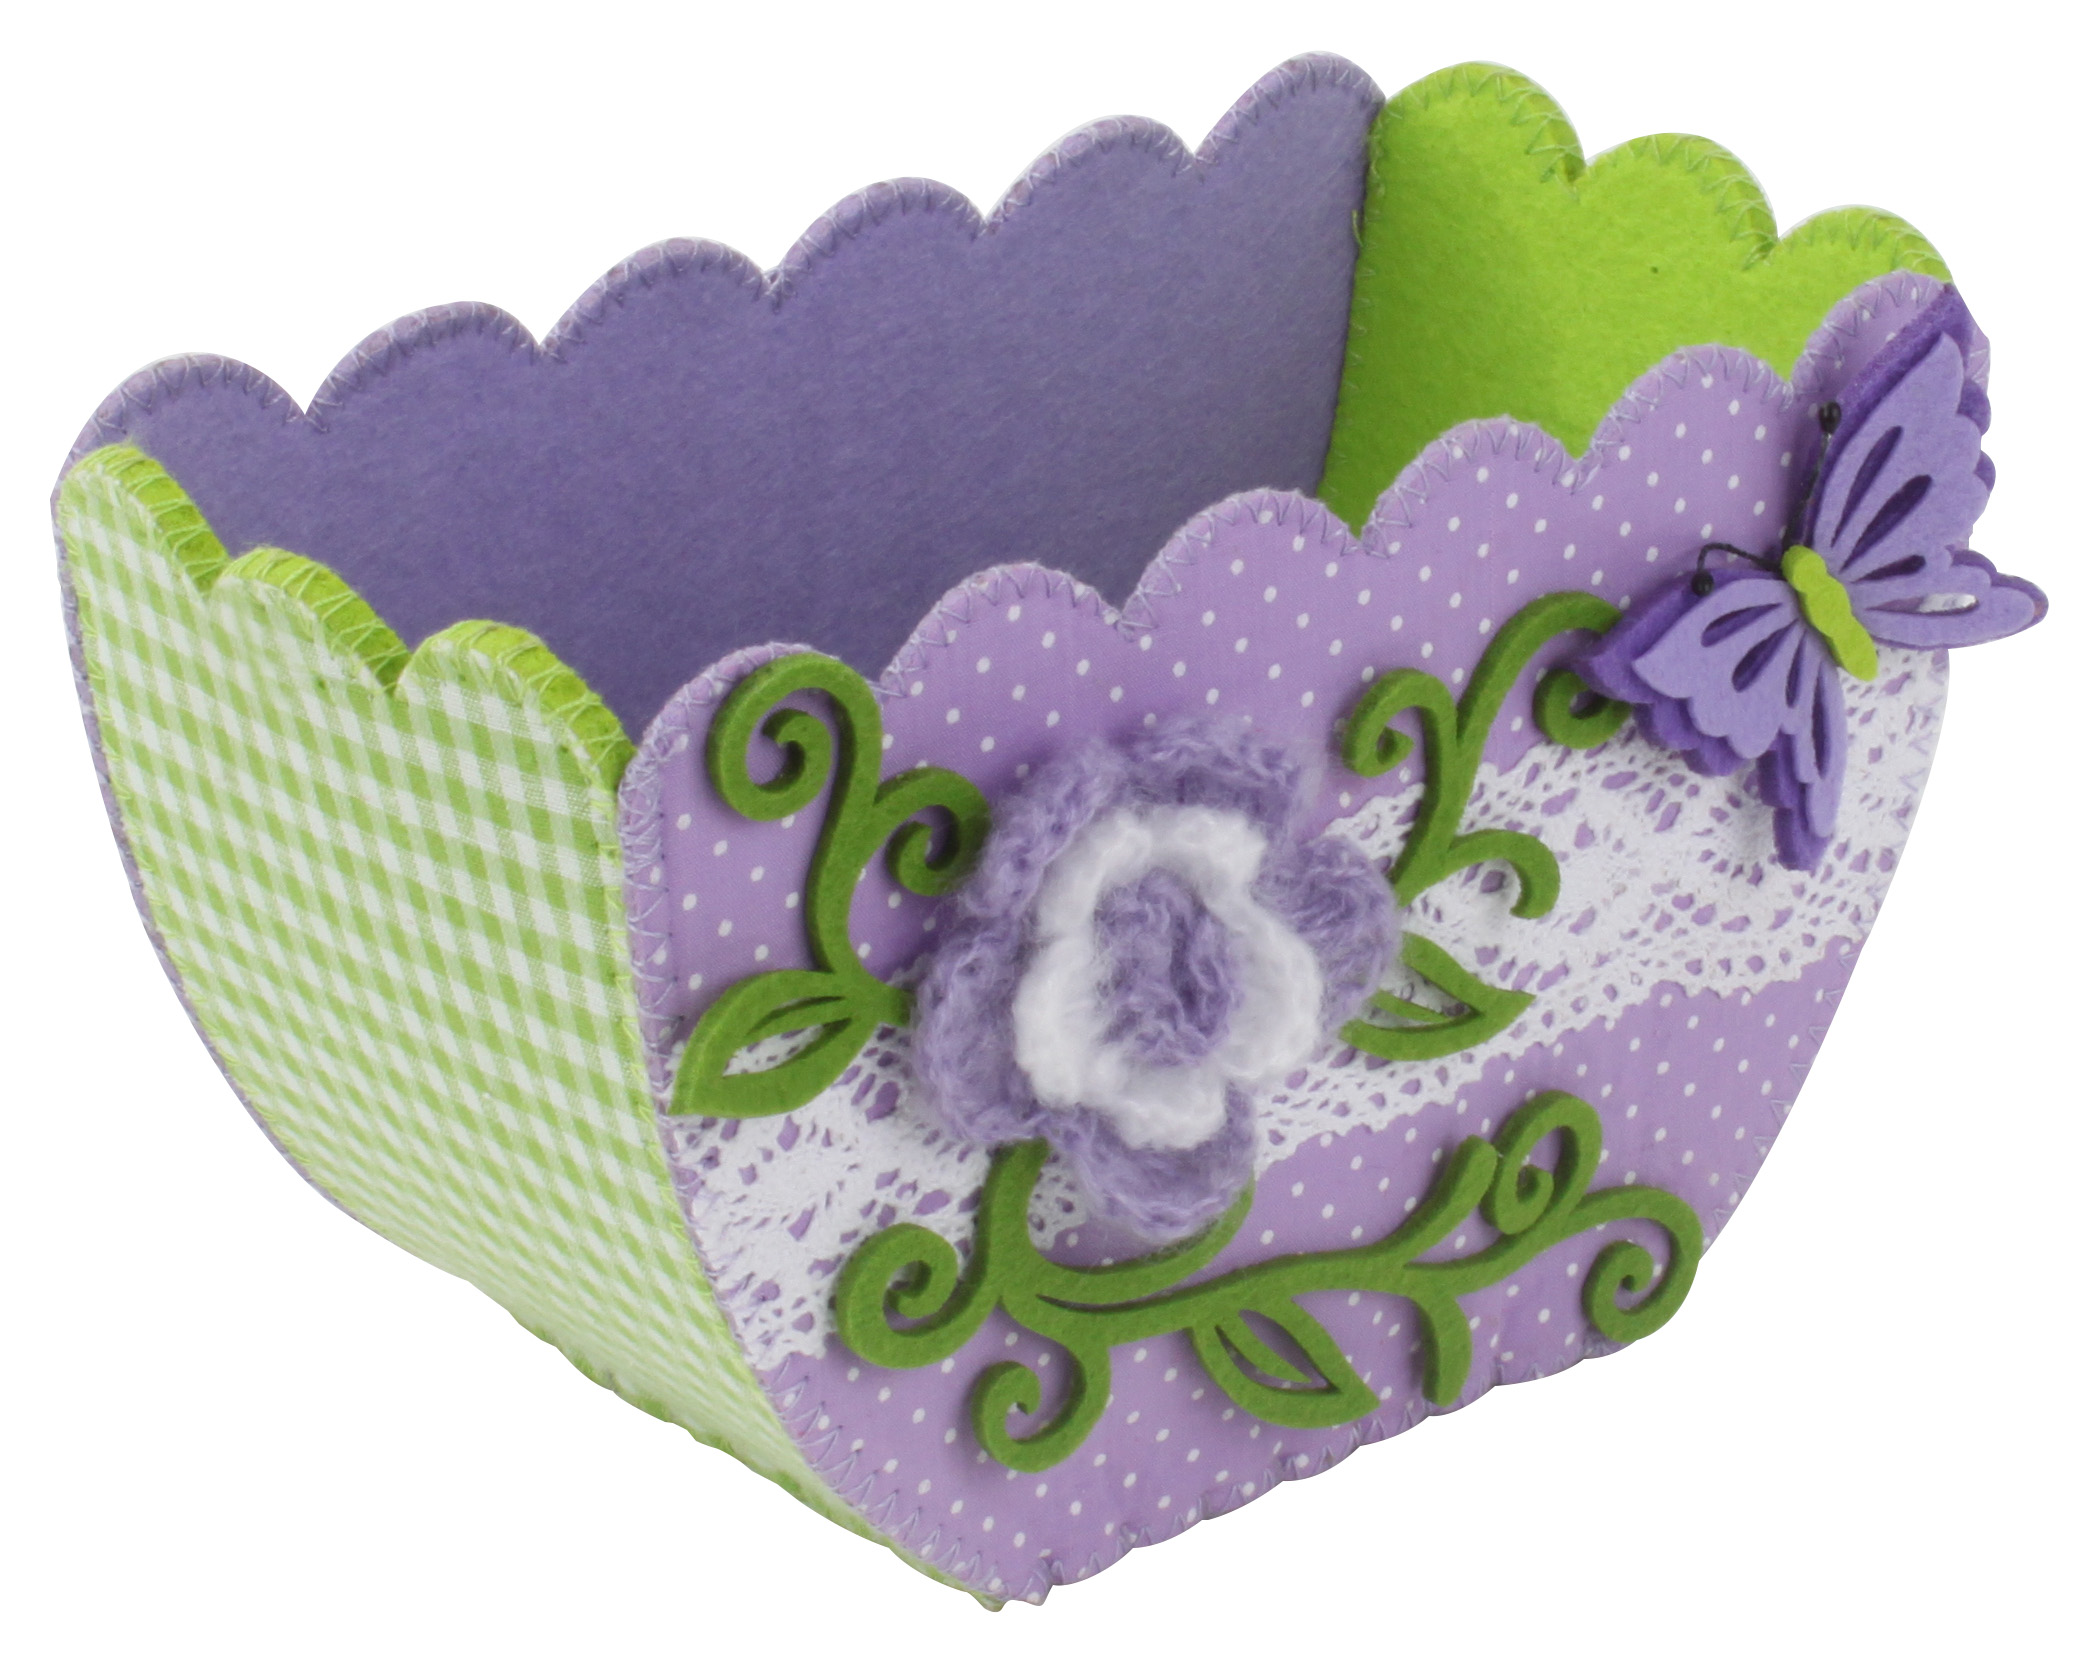 €6 FLOWER FELT BASKET IN PURPLE COLOR 21X10X12